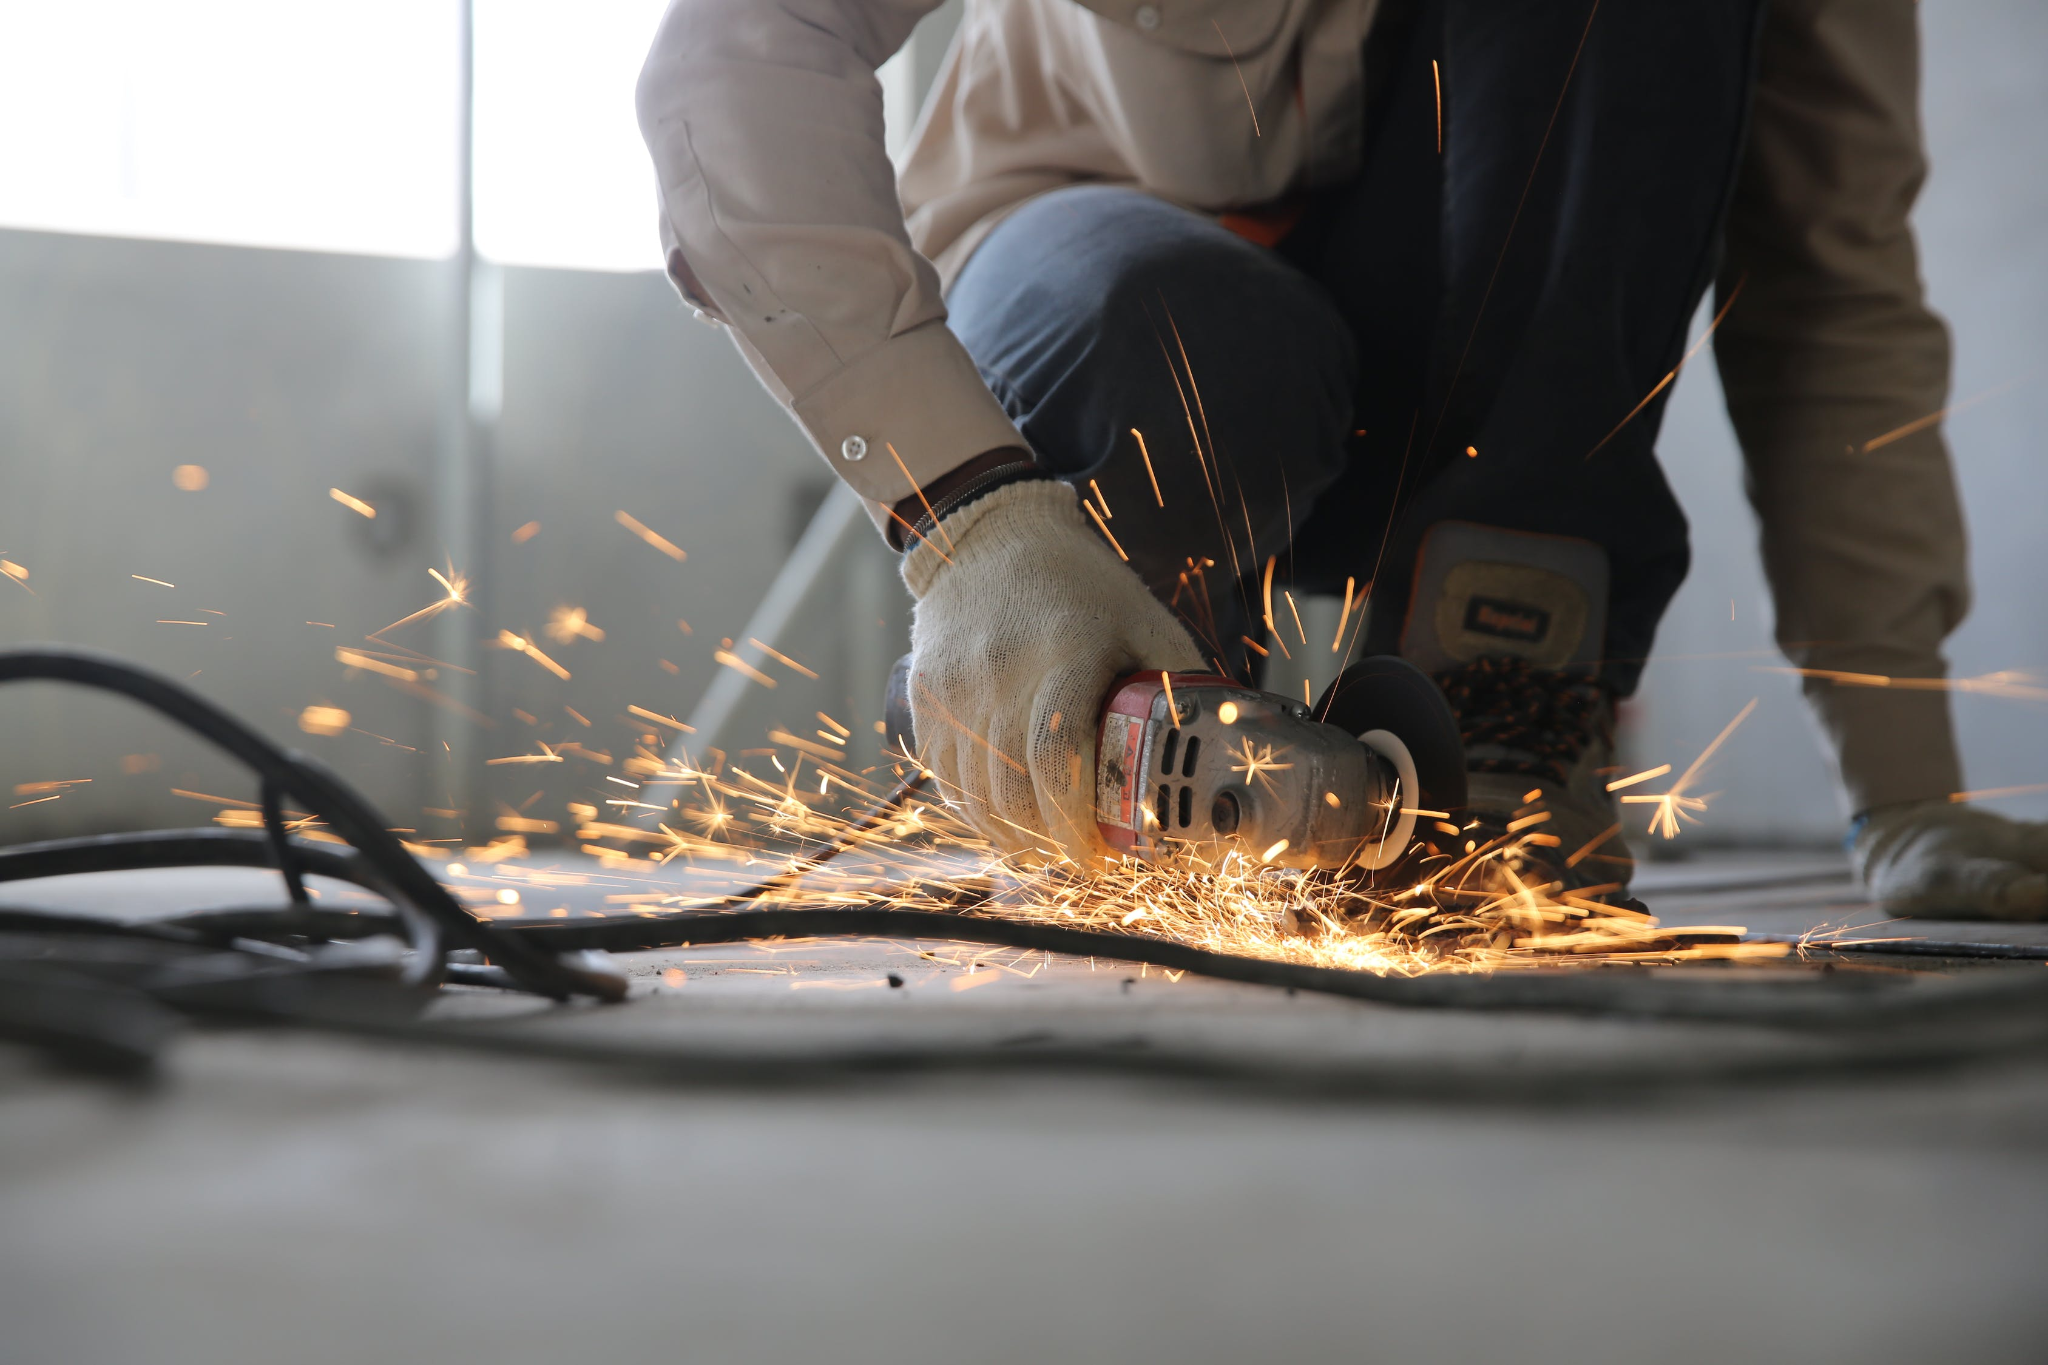 worker using grinding and cutting tools for construction project